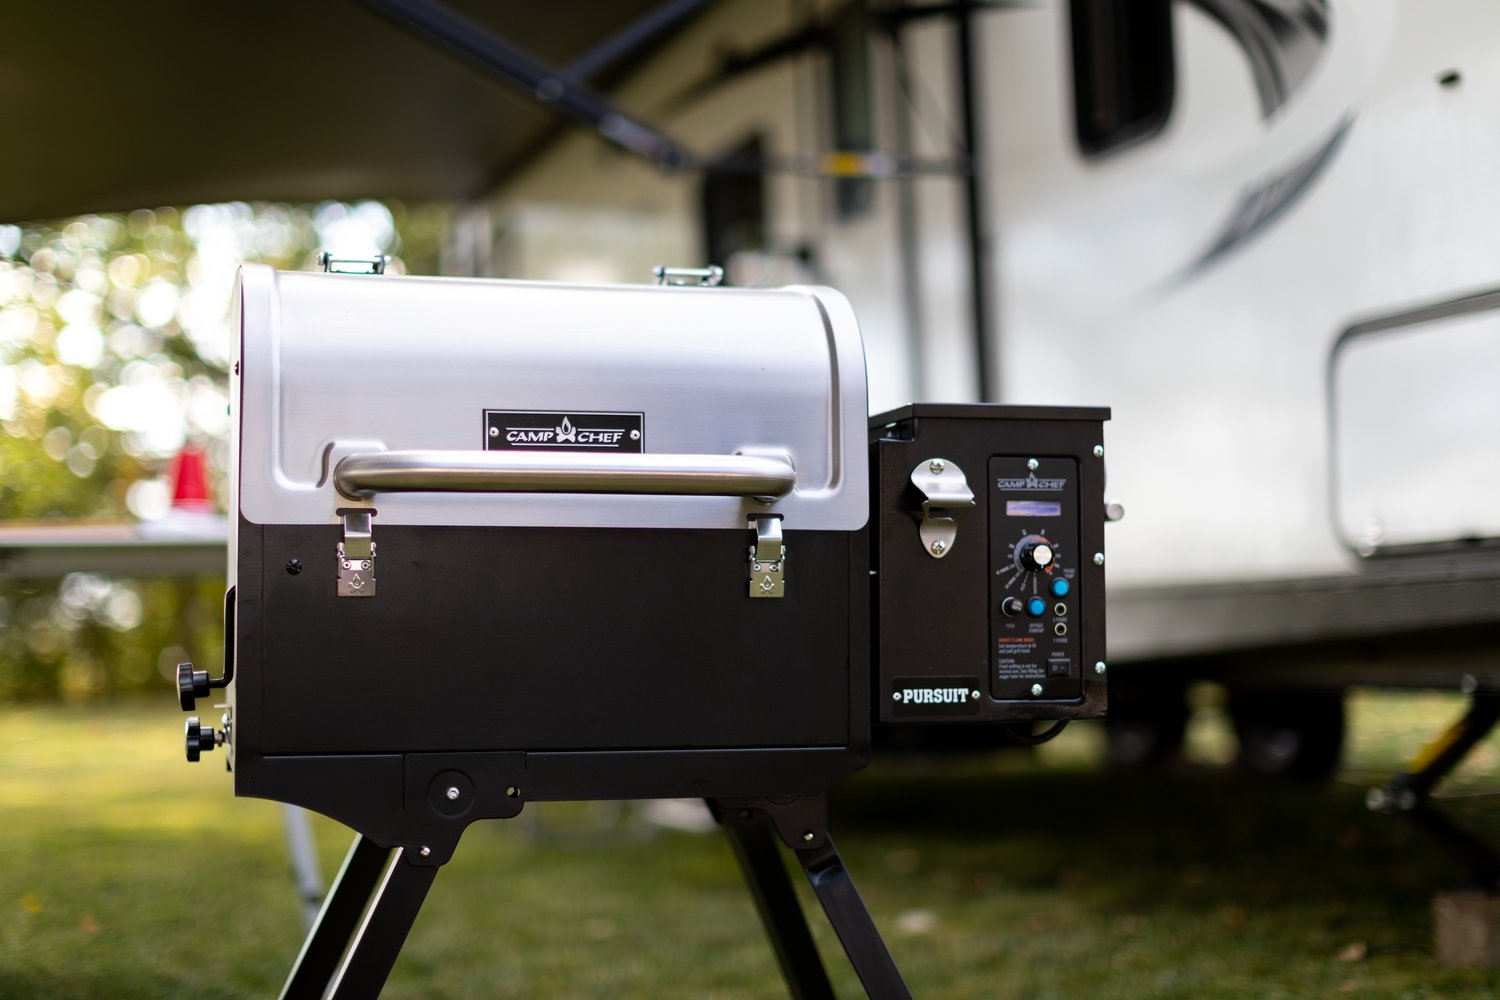 Camp Chef Pursuit 20 Pellet Grill